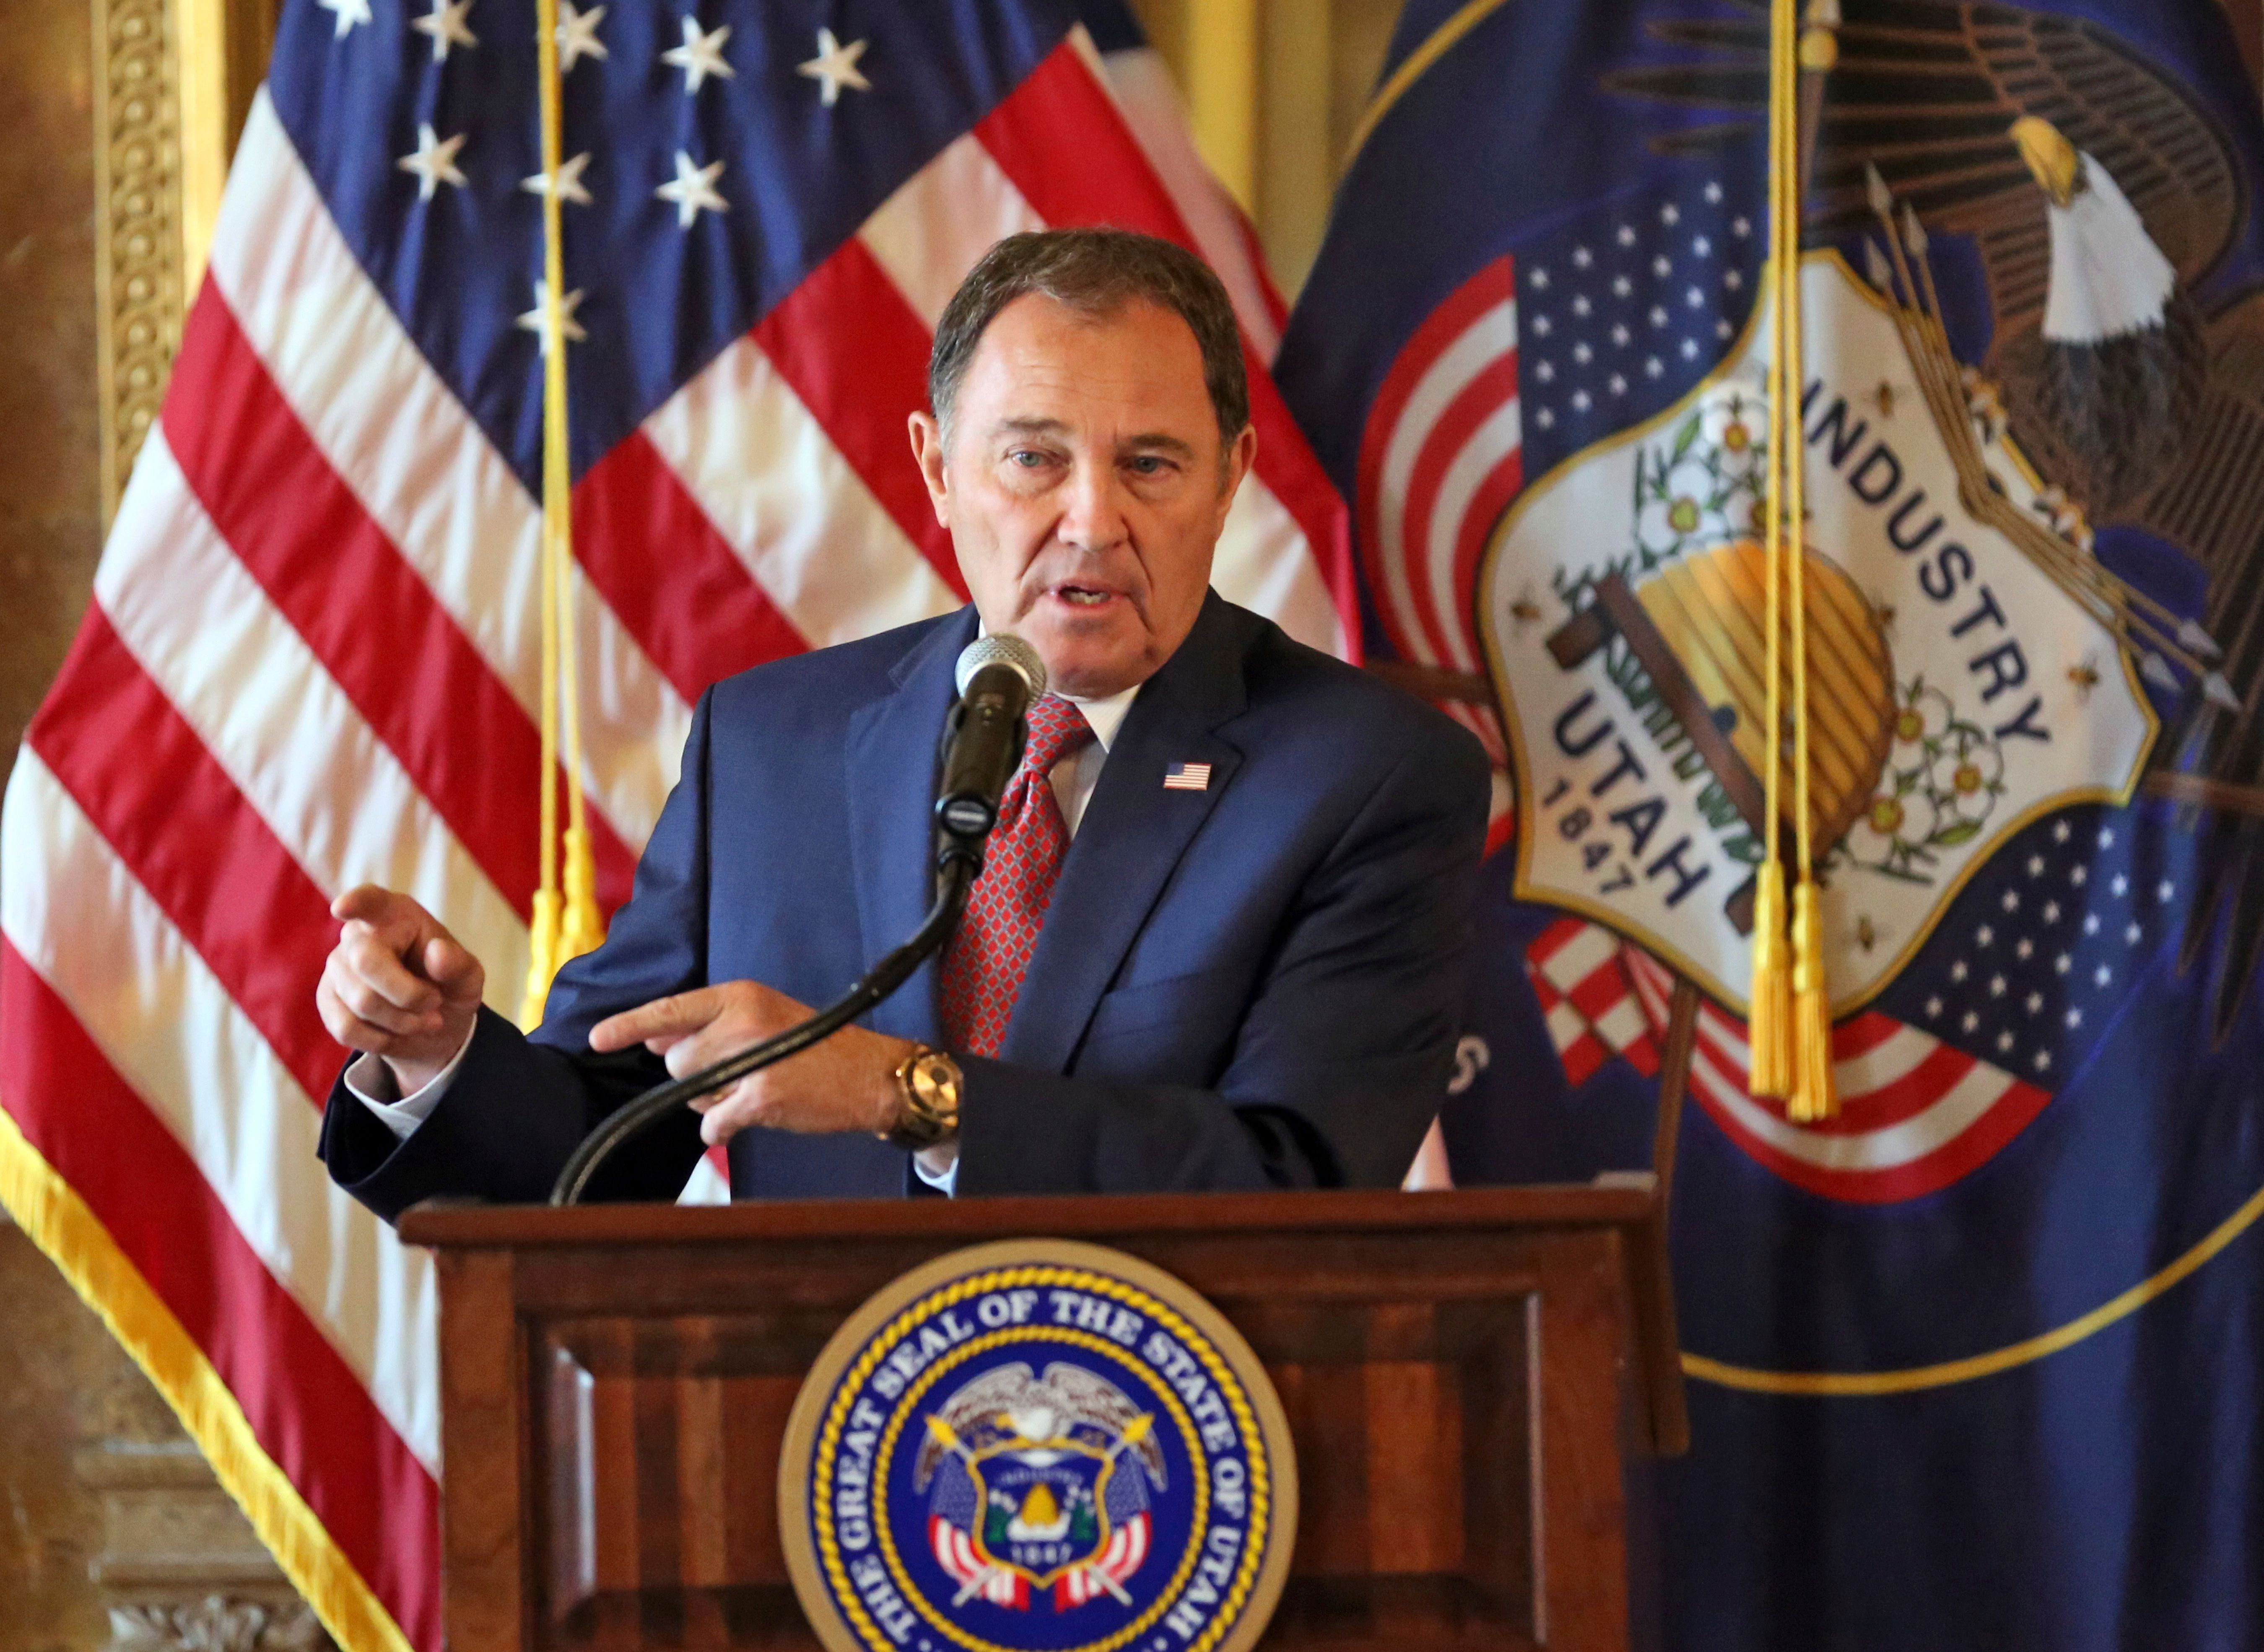 Utah Gov. Gary Herbert addresses Utah's teacher shortage during a news conference at the Utah State Capitol Wednesday, Sept. 12, 2018, in Salt Lake City. Herbert is pleading Utah teachers to stay in their classrooms and for those who have left to come back. (AP Photo/Rick Bowmer)